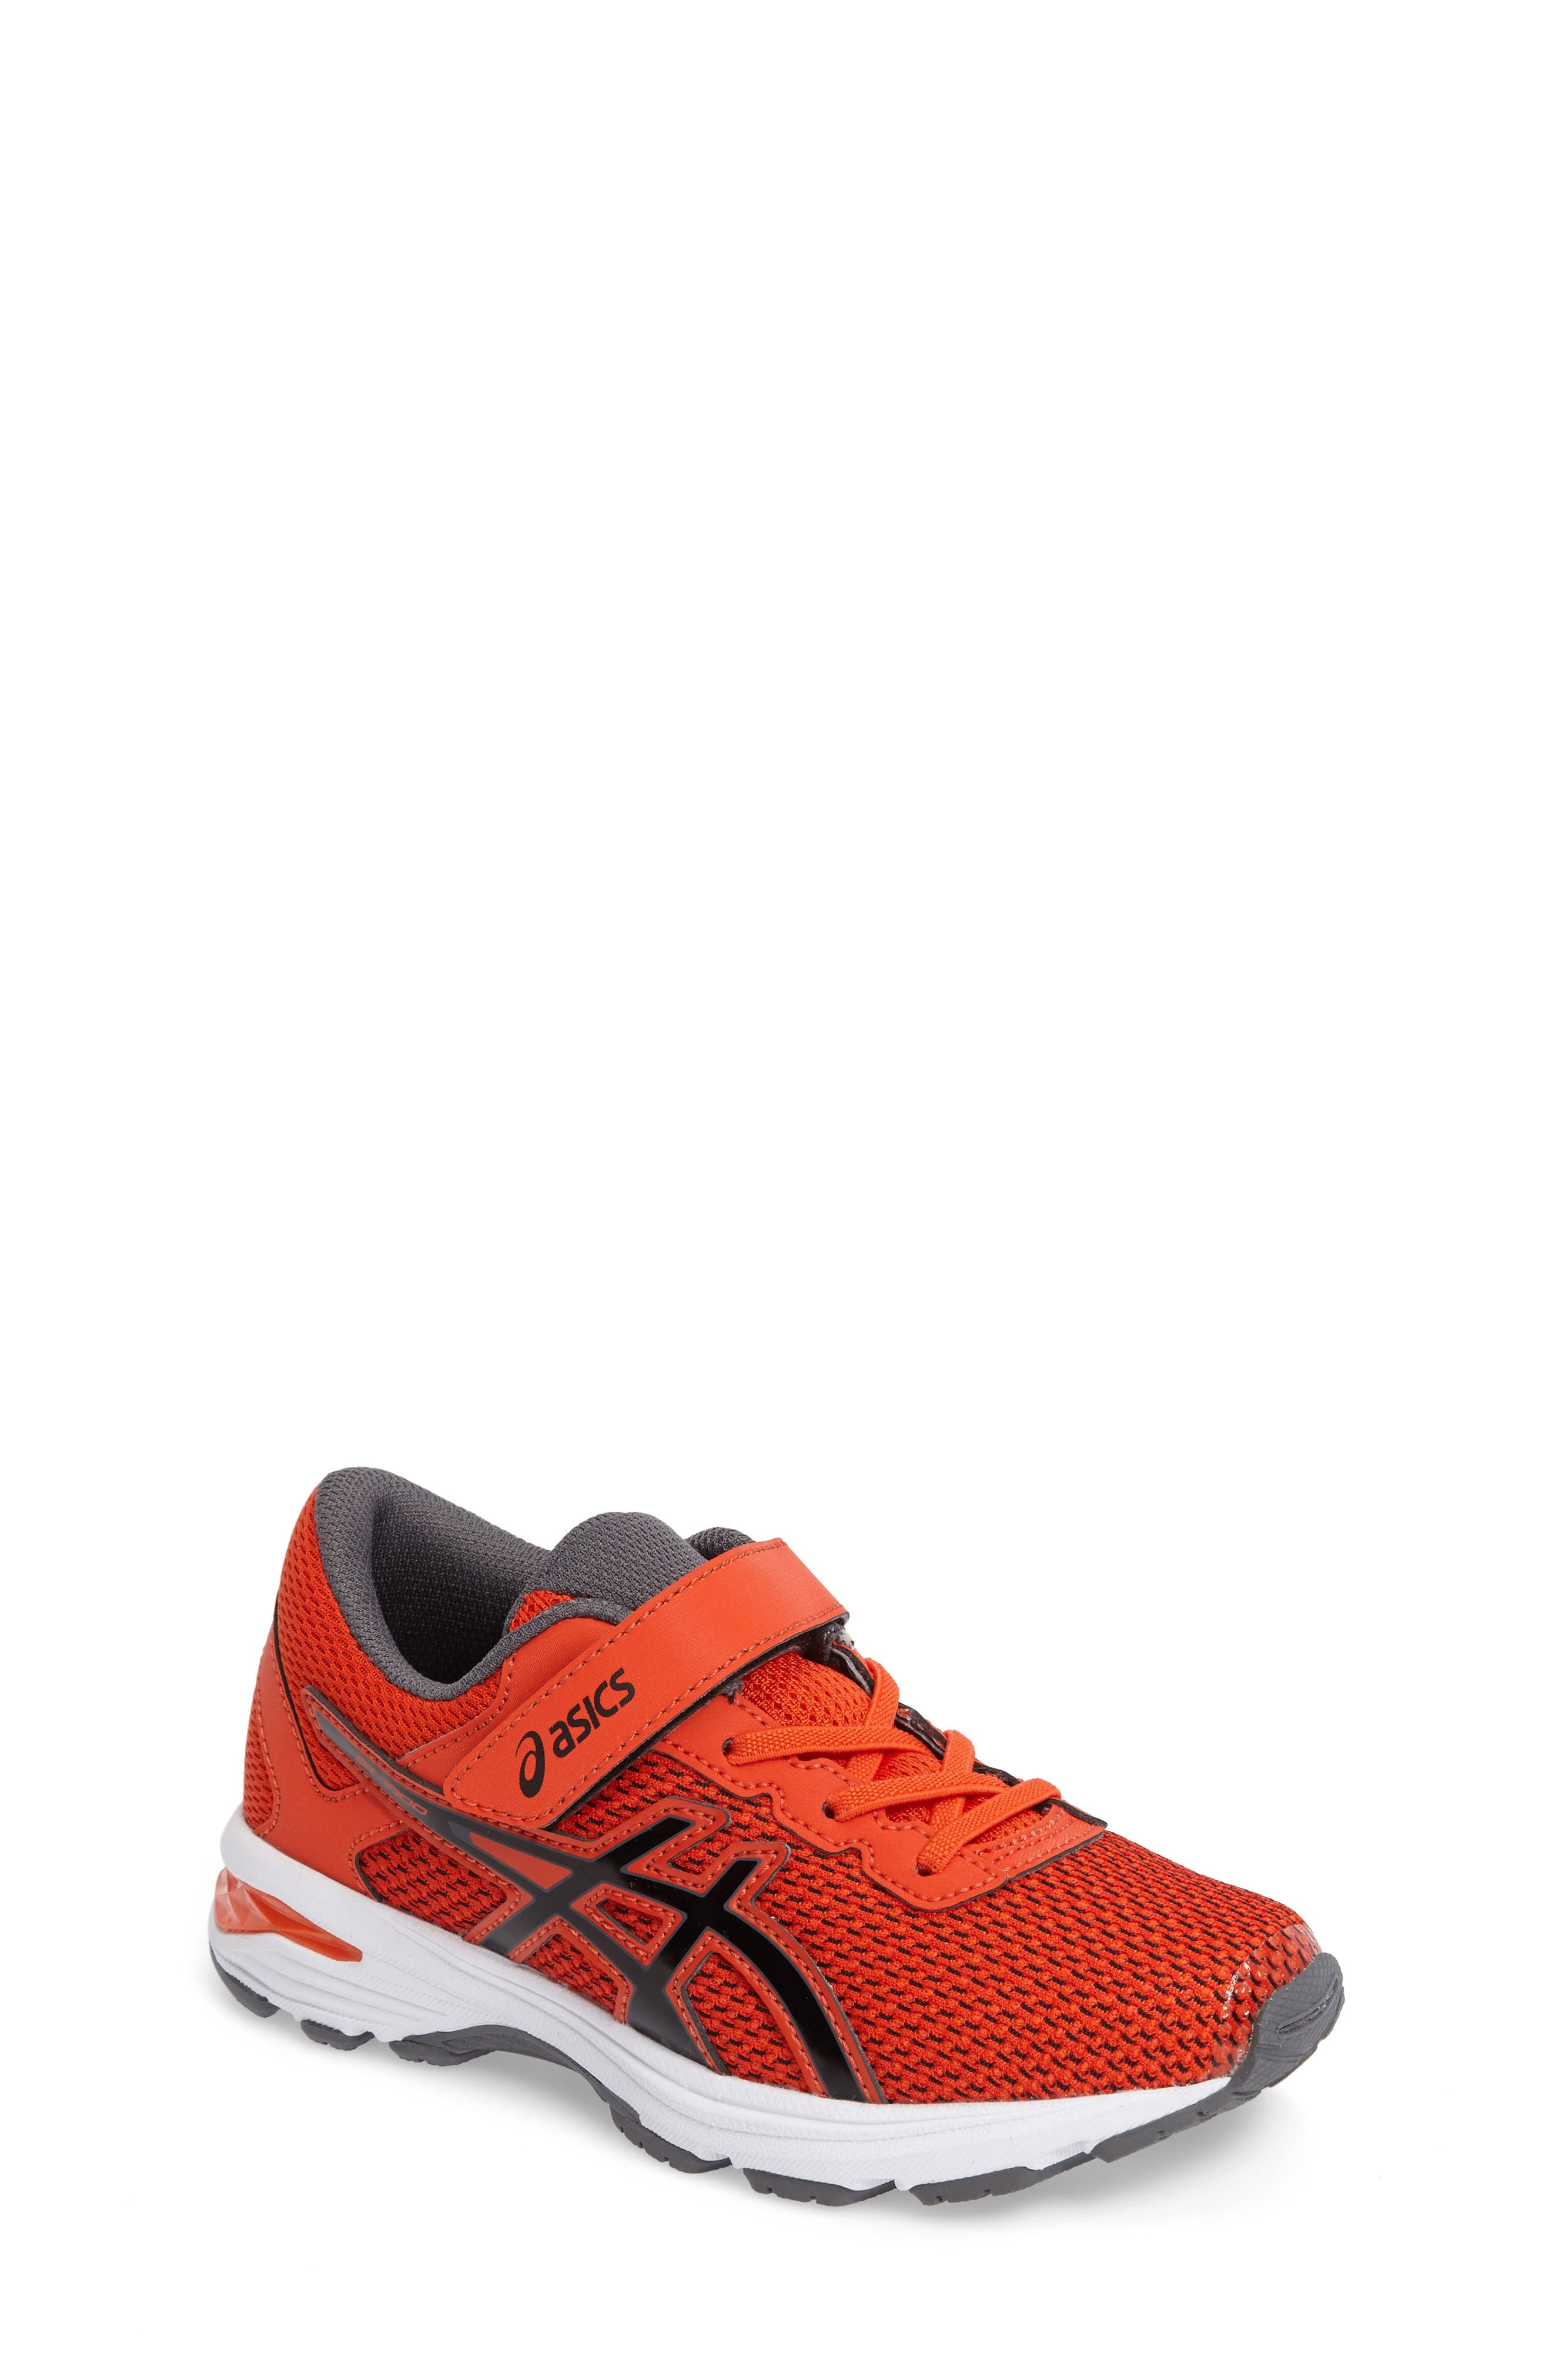 Main Image - Asics GT-1000™ 6 PS Sneaker (Toddler & Little Kid)